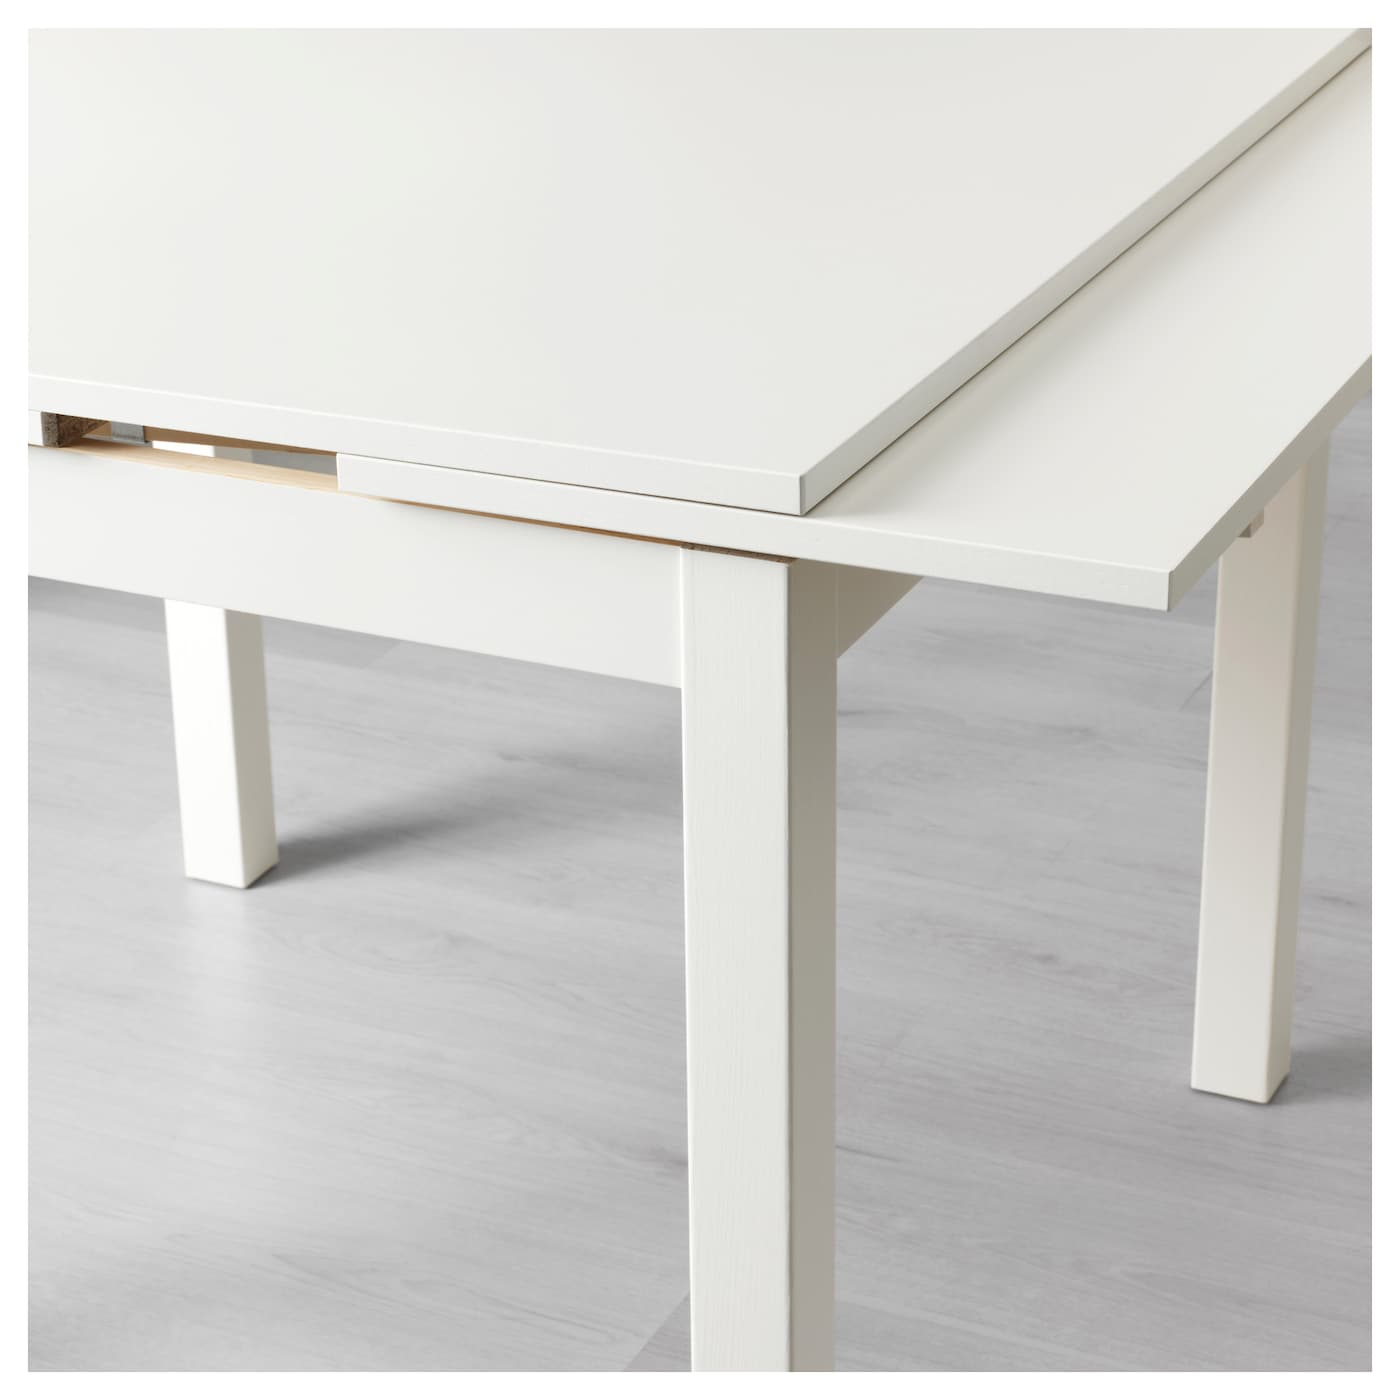 Bjursta extendable table white 90 129 168x90 cm ikea for Table extensible blooma